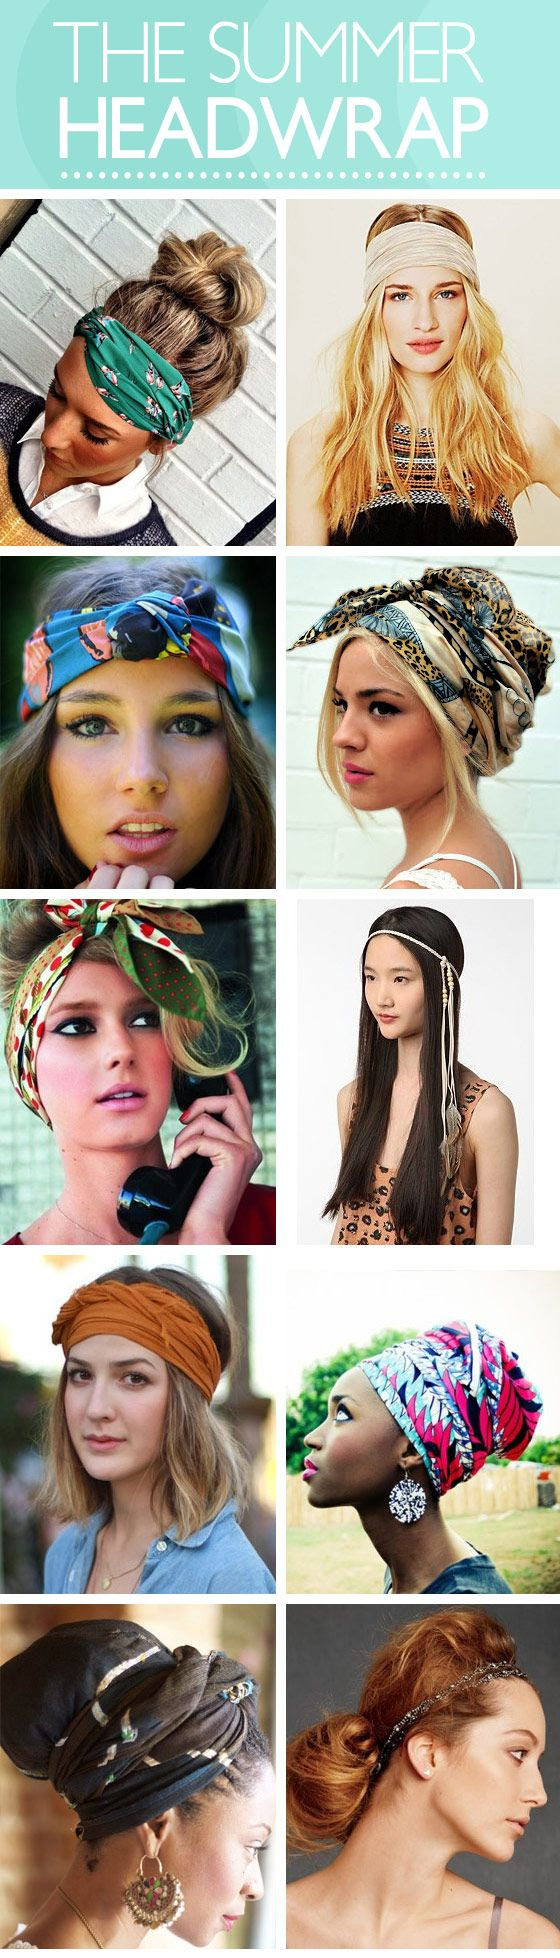 10 Ways to Wear a Summer Head Wrap - Sources here! http://www.latest-hairstyles.com/accessories/ways-summer-head-wrap.html?ref=home#